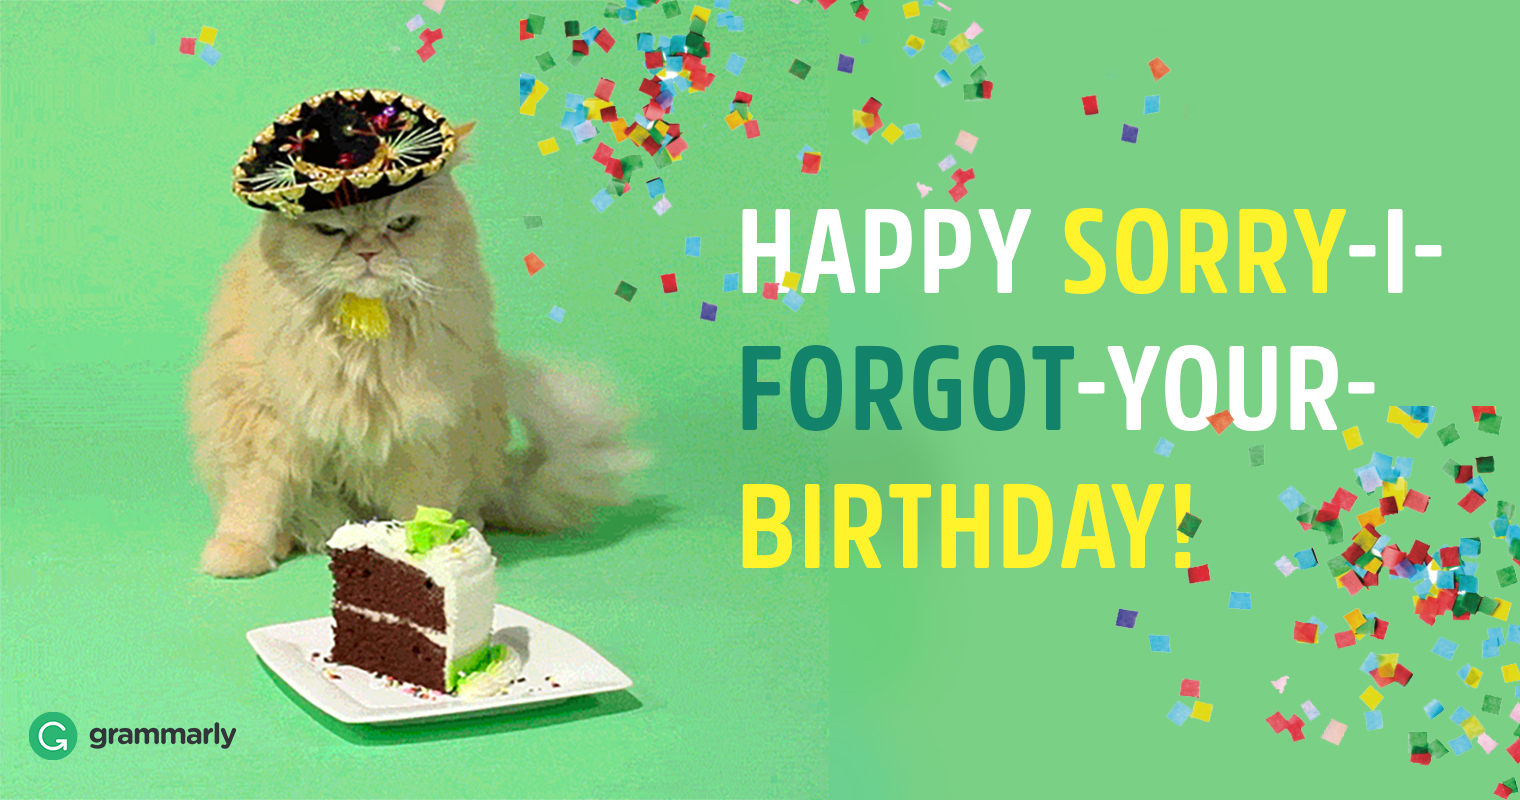 Happy Belated Birthday or Belated Happy Birthday? | Grammarly